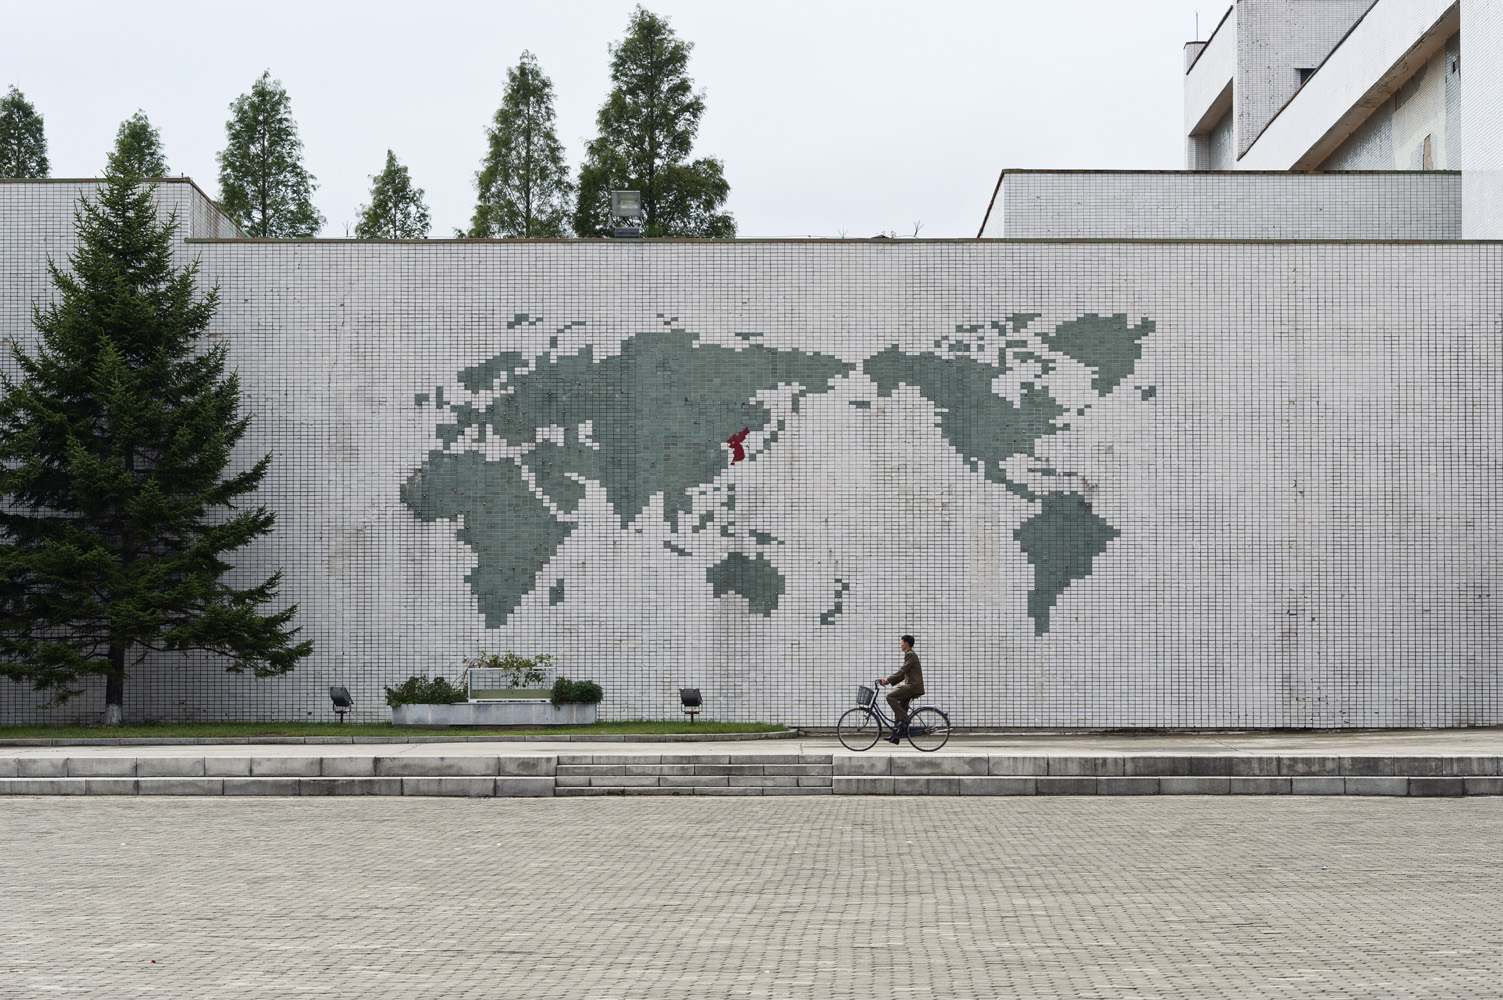 Man bicycling under a world map mural at Songdowon International Children's Union Camp in Wŏnsan, Kangwŏn Province.